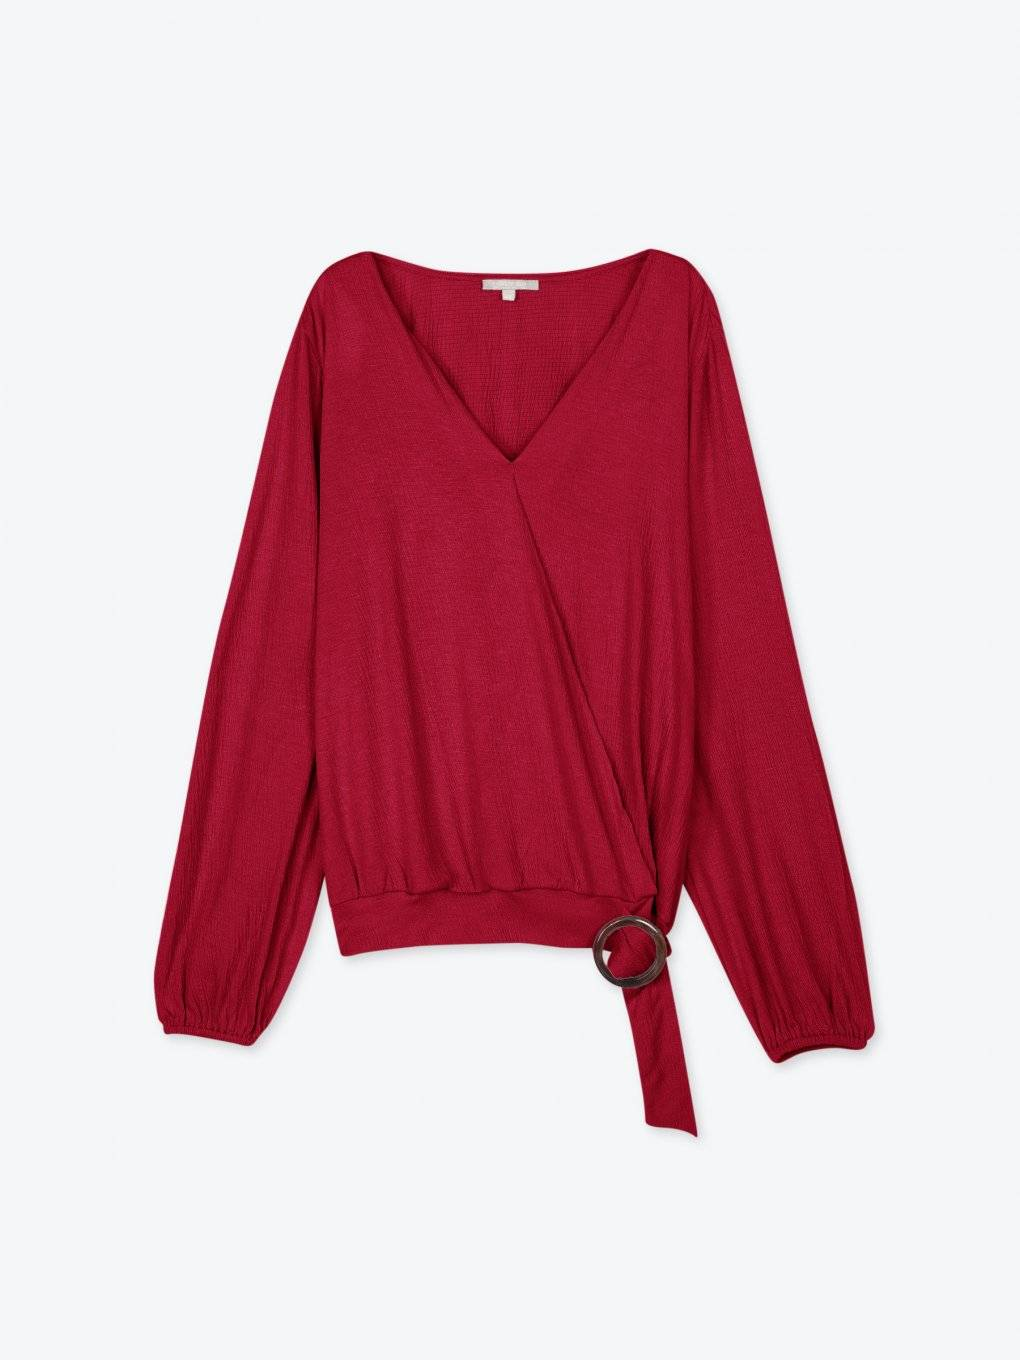 Wrap structured blouse with round buckle